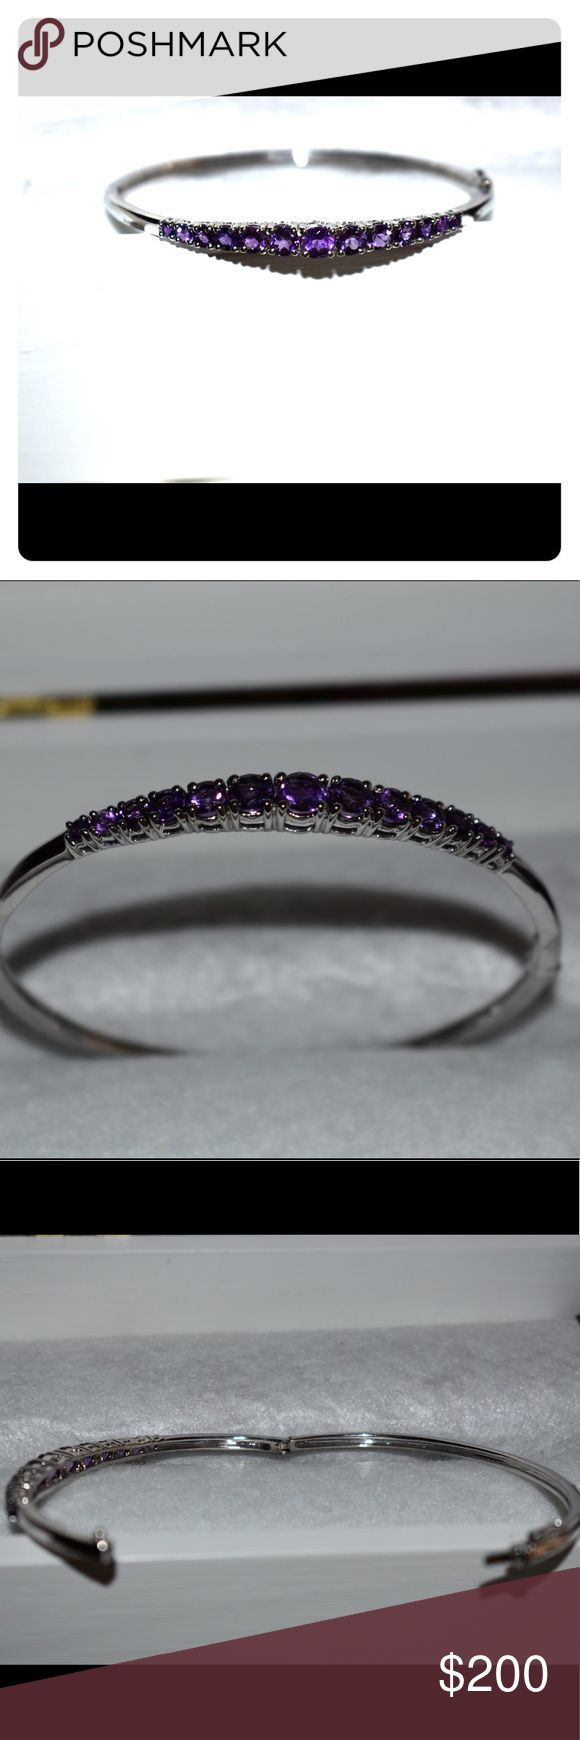 Silver amethyst bangle Bought from qvc. Genuine amethyst stones and small faux diamonds. Absolutely beautiful bracelet. Made for us plus sized ladies Jewelry Bracelets